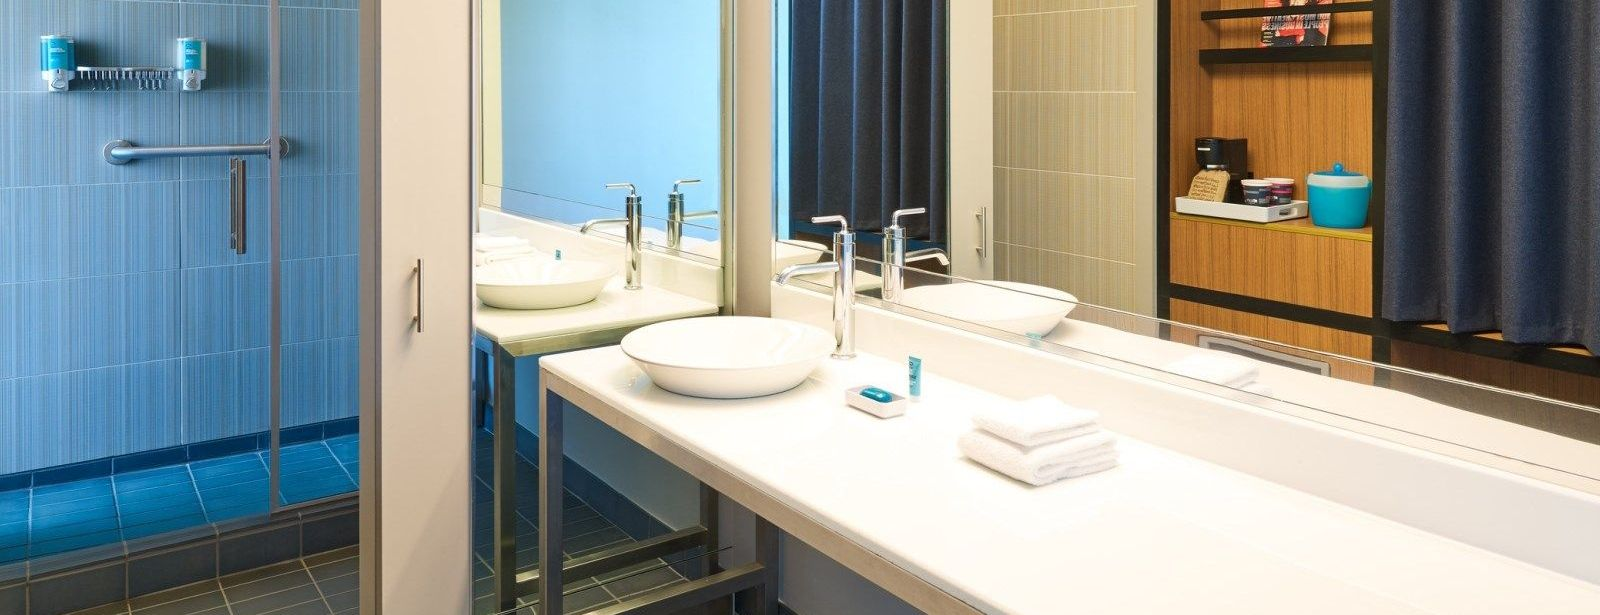 San Antonio Airport Accommodations - Guest Bath